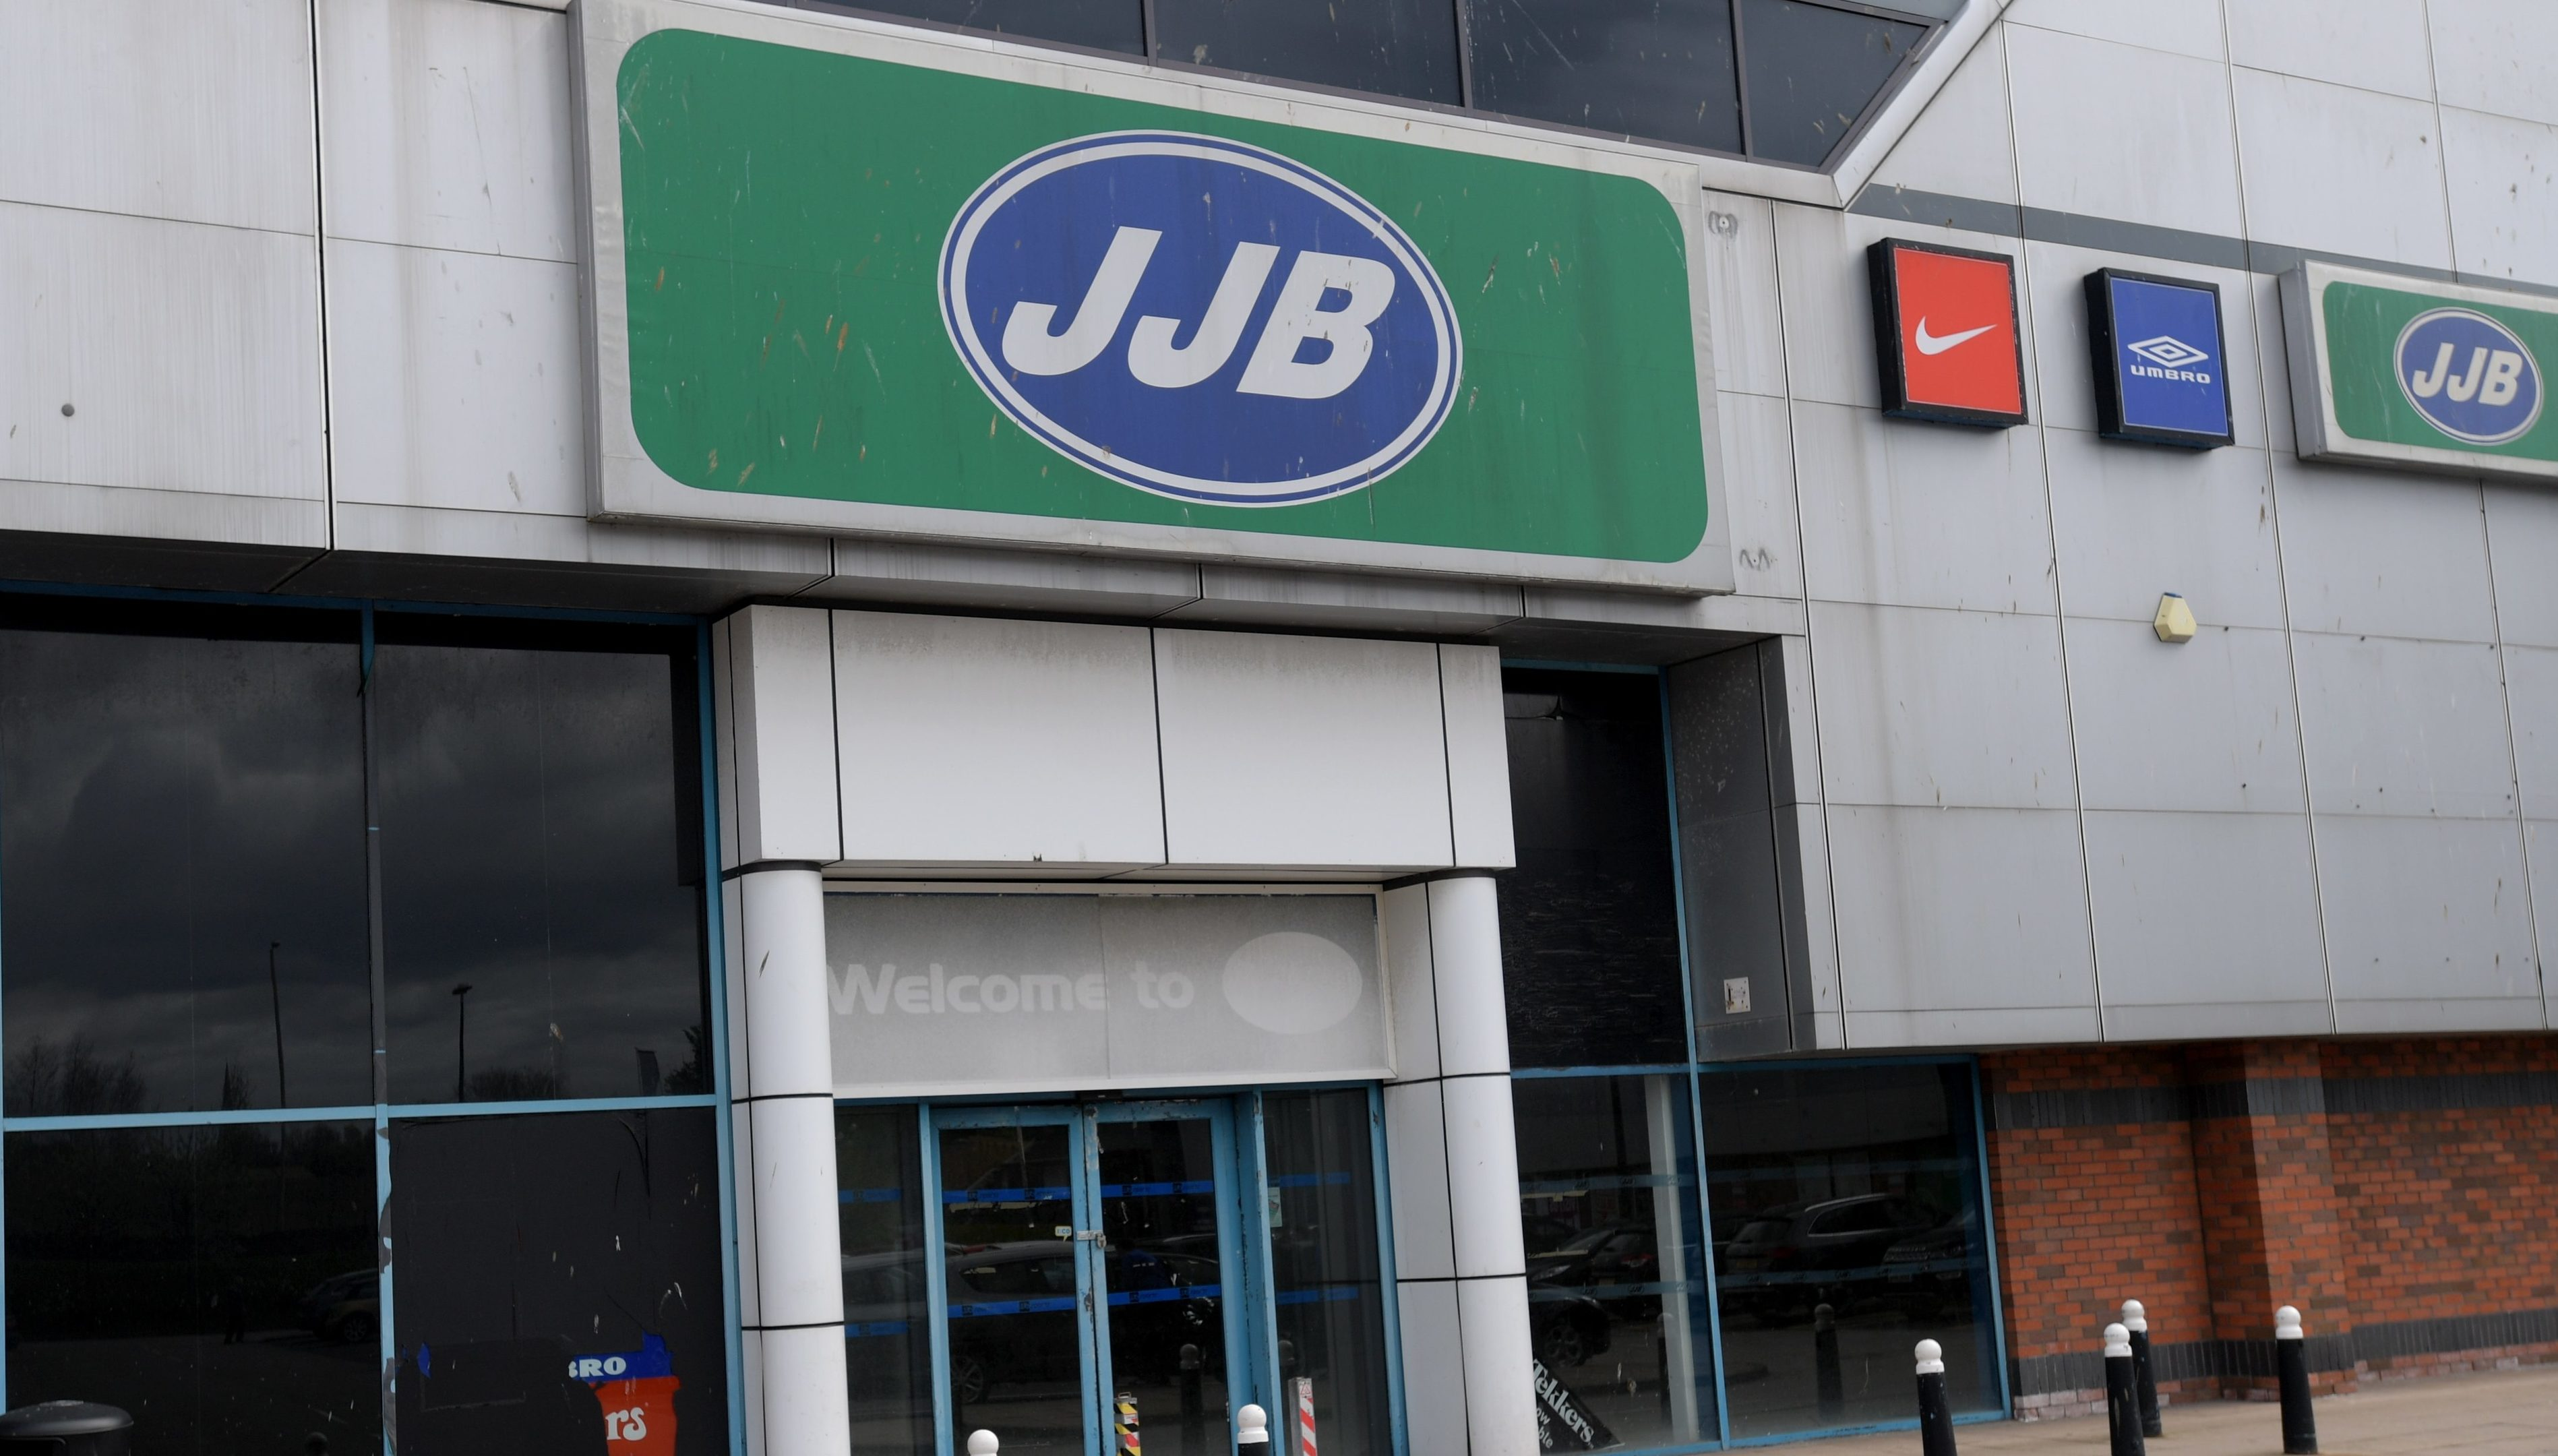 The former JJB store at Berryden Retail Park.